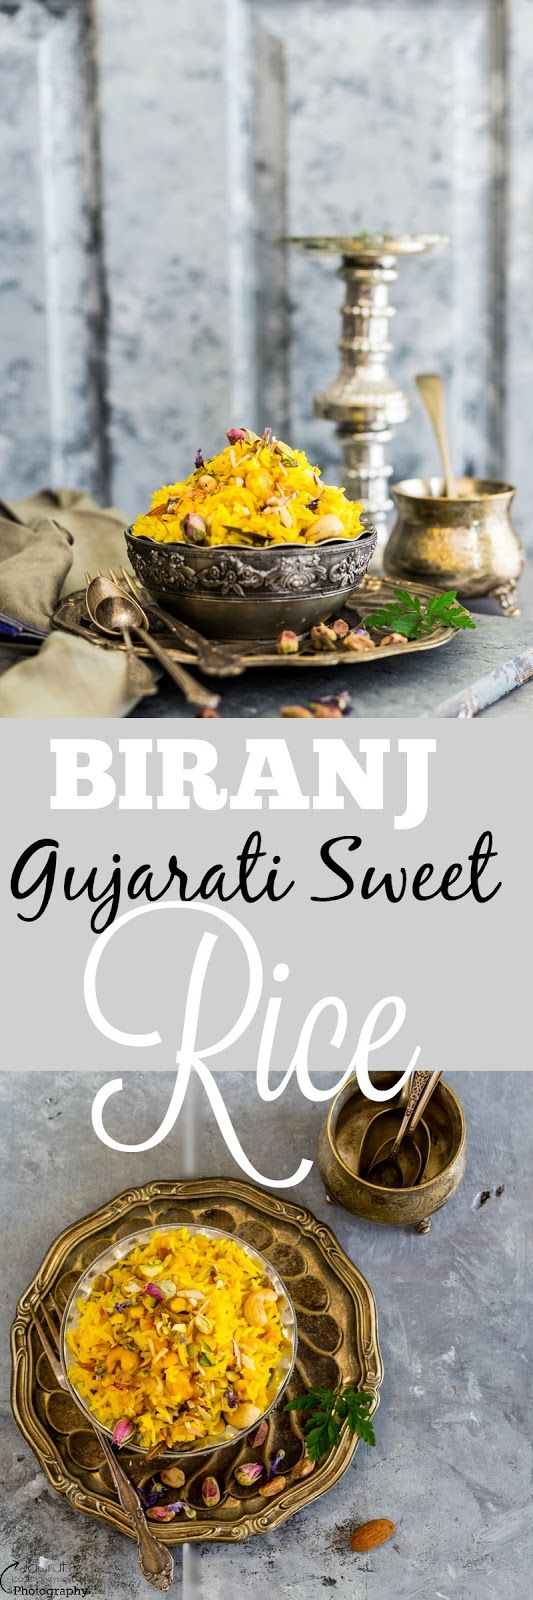 Jagruti's Cooking Odyssey: Biranj - Gujarati Sweet Rice and Bengal Gram with Nuts, Raisins and Aromatic Spices